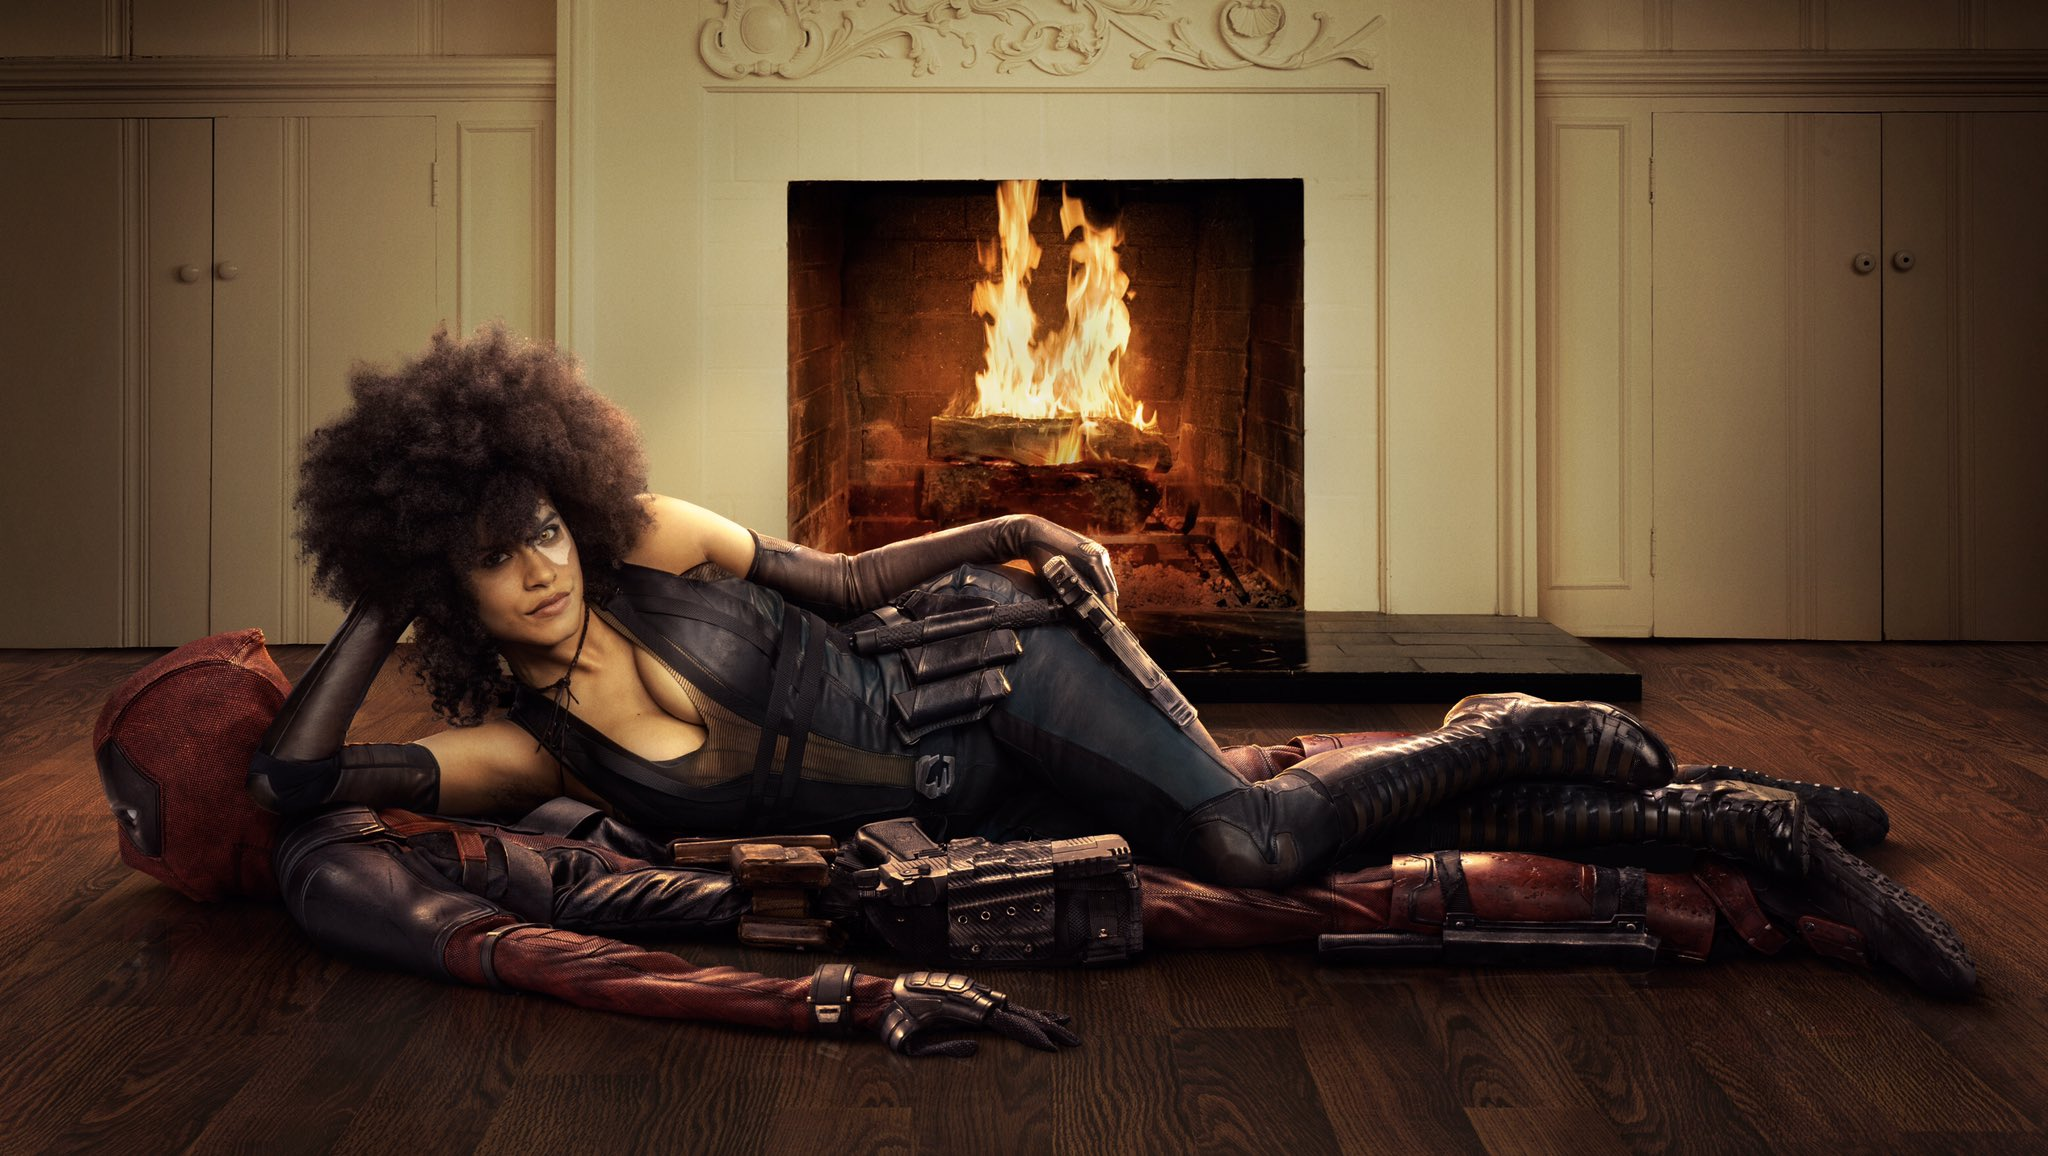 Photo du film Deadpool 2 avec Domino (Zazie Beetz) sur un tapis Deadpool